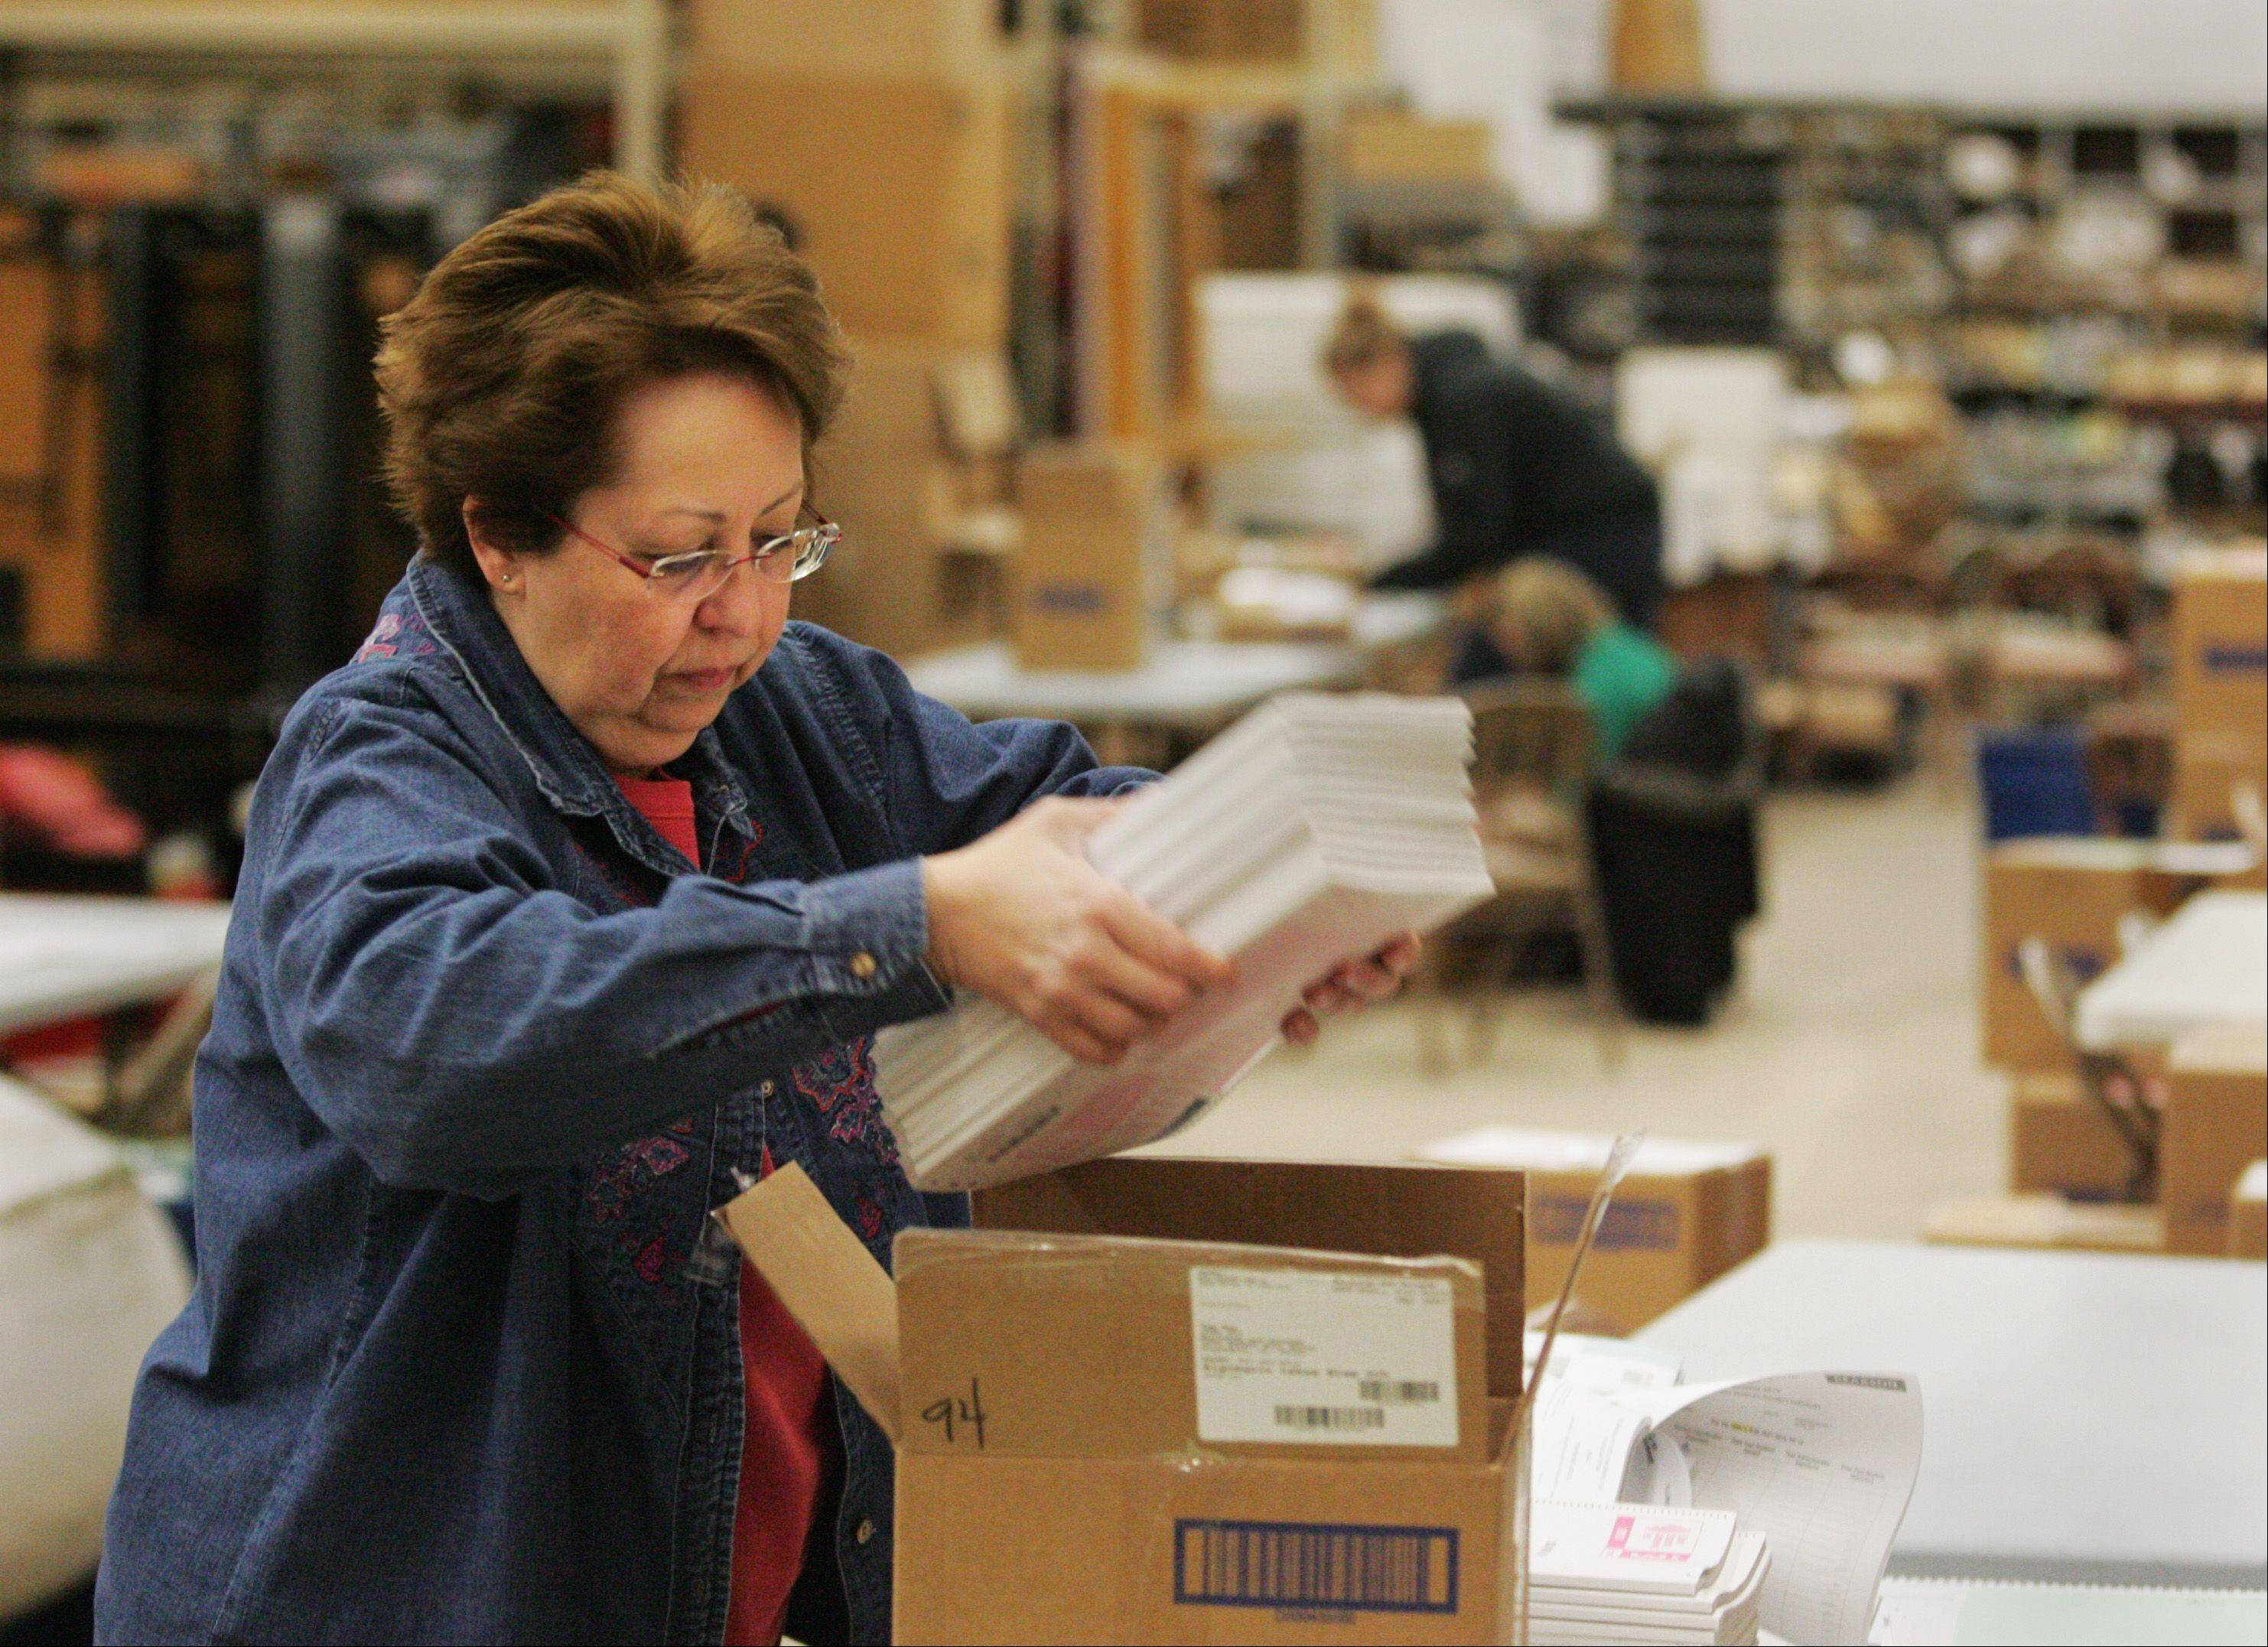 Community Unit District 300 director of transportation Donna Bordsen places a stack of ISAT booklets into a box at the district transportation center in Algonquin. Testing finished March 15. Scores will be released next fall.